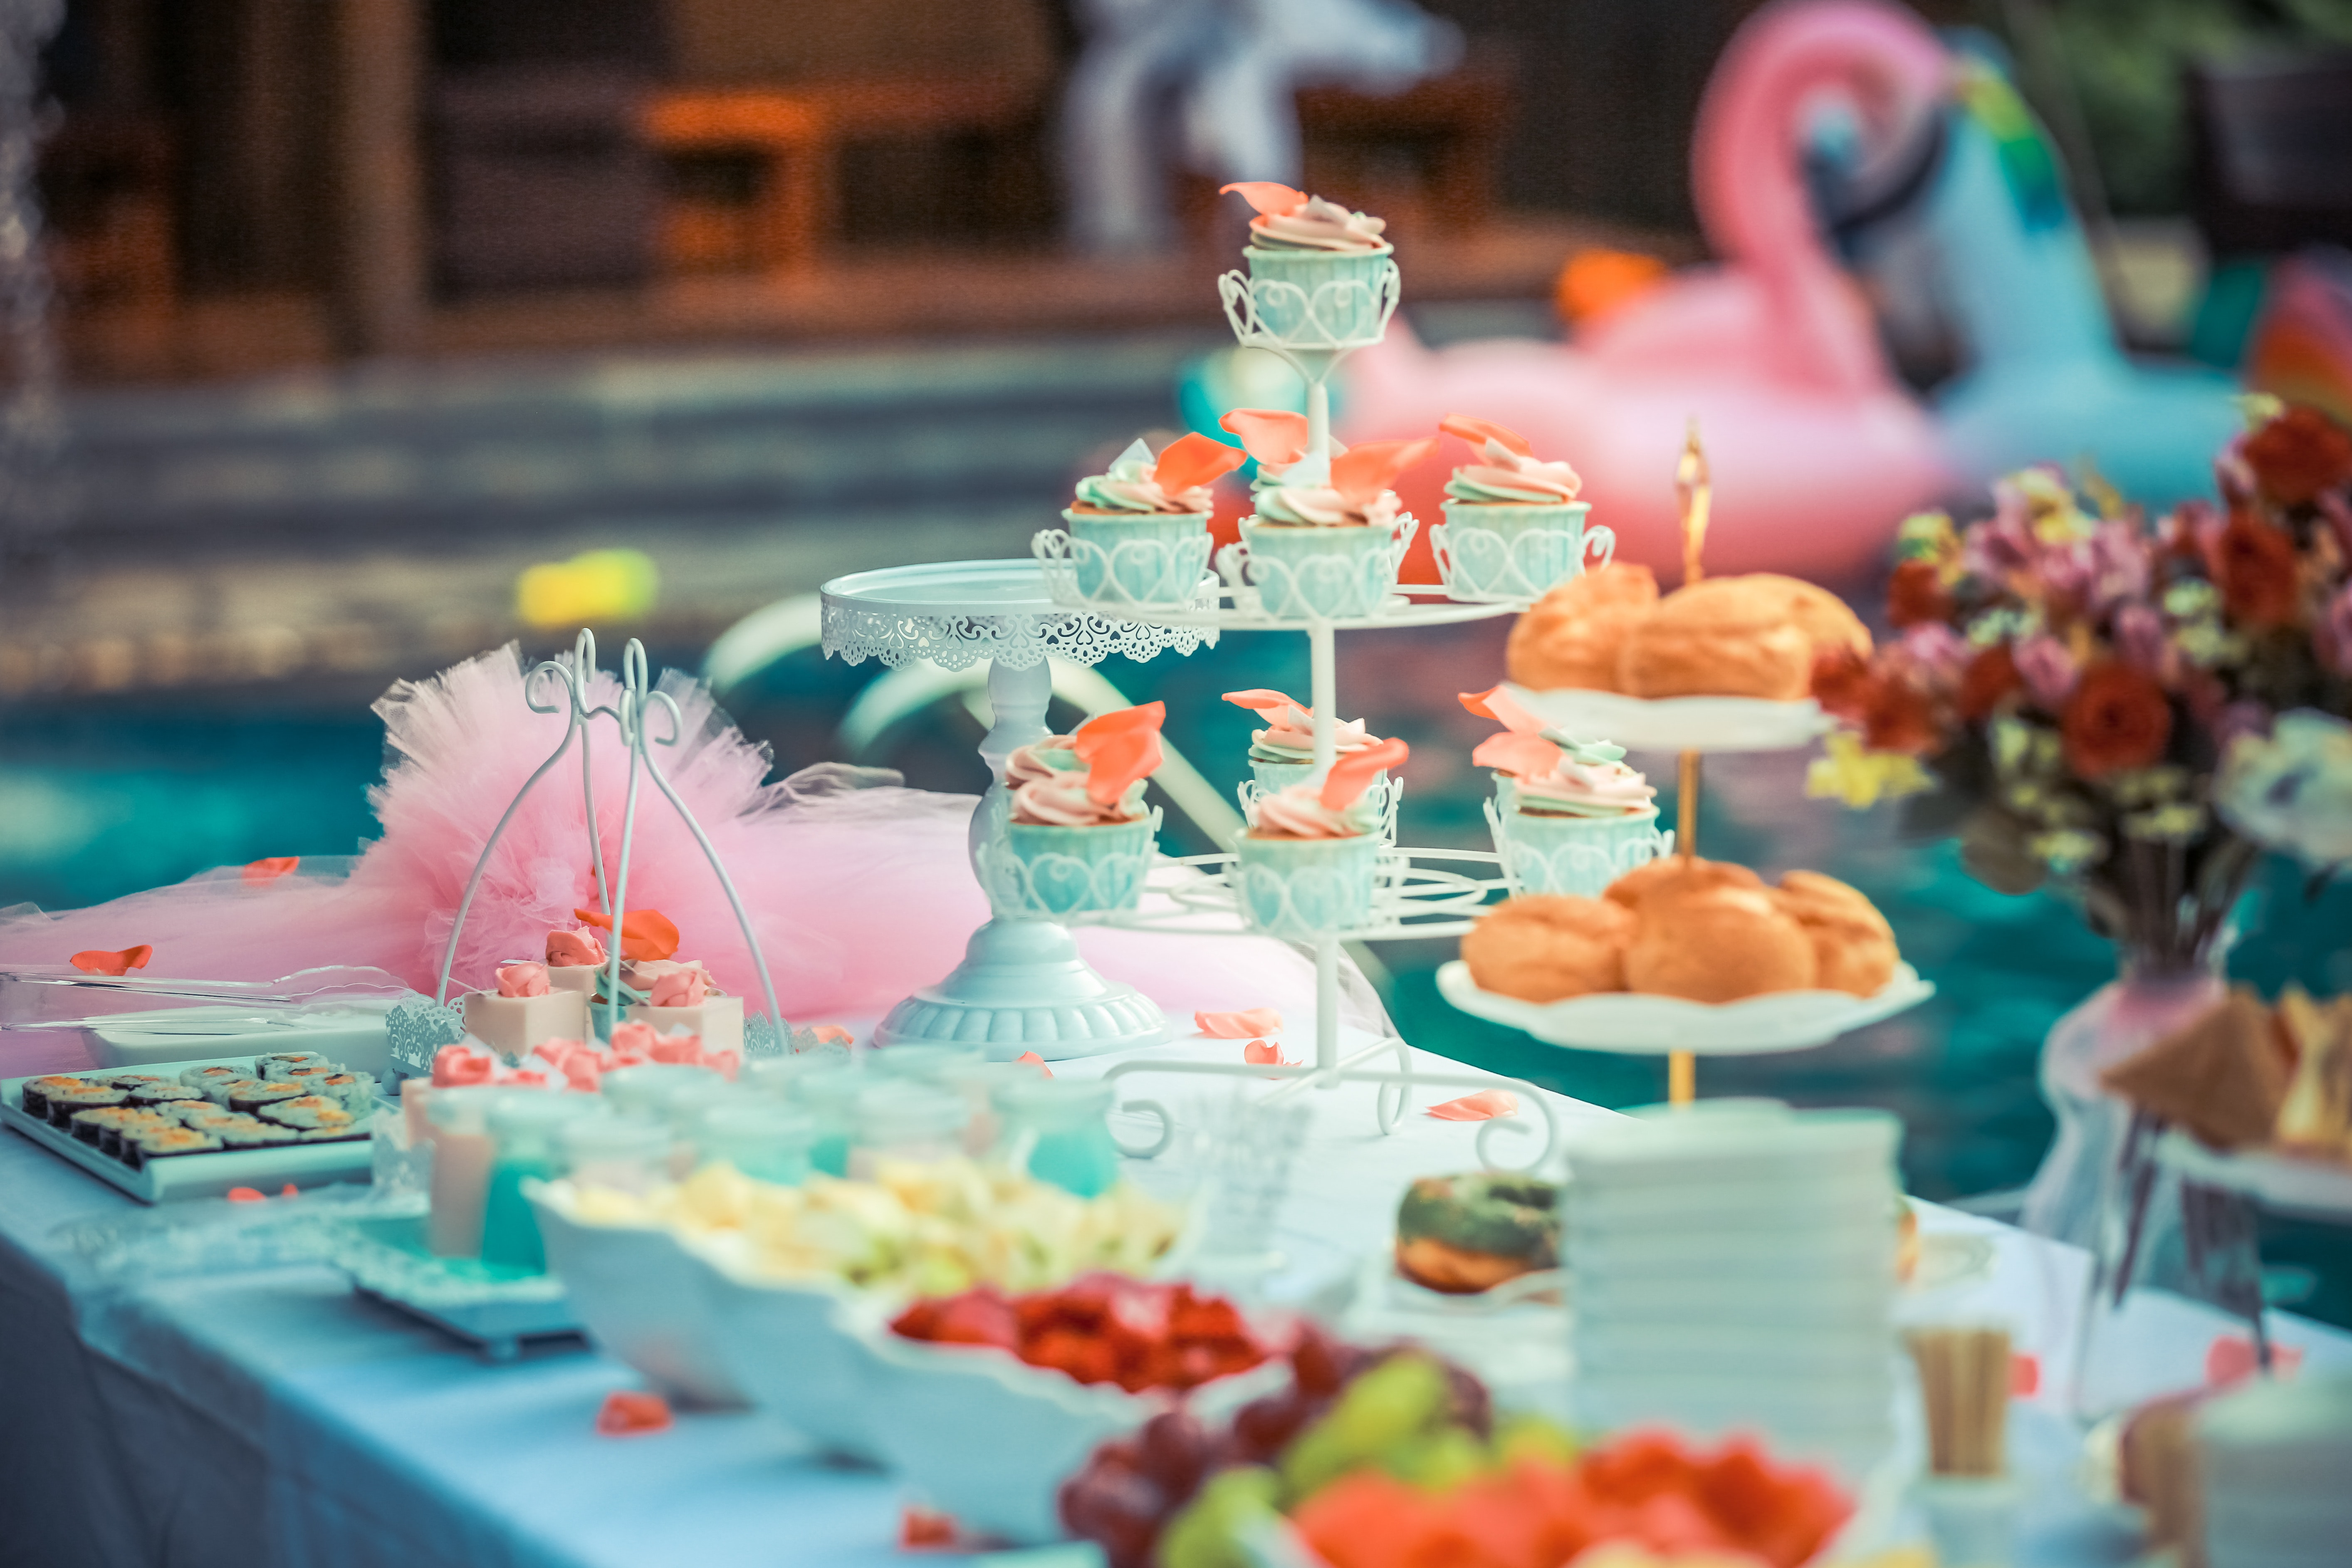 5 Places To Get Your Baby Shower Supplies At A Good Price